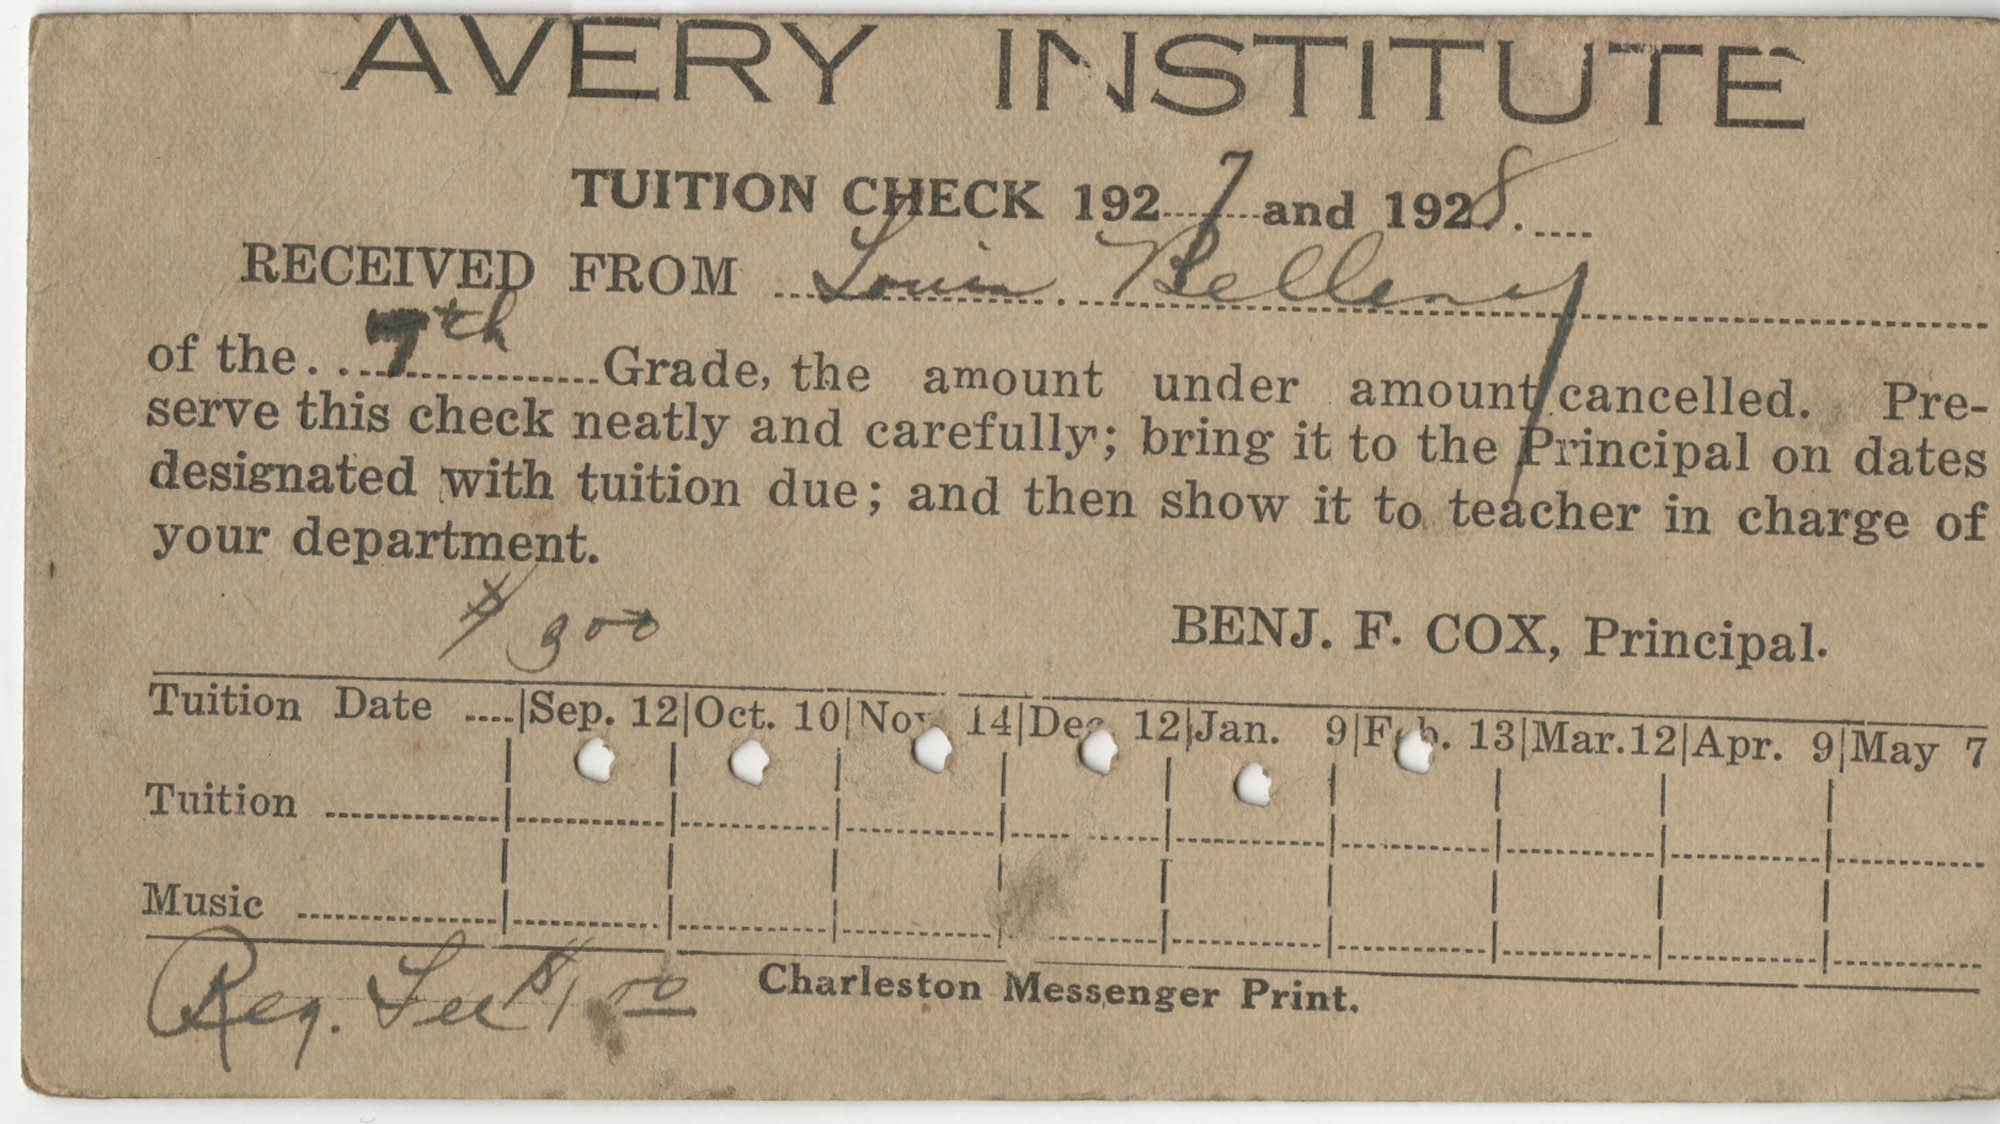 Avery Institute Tuition Check Received from Louis Belleny